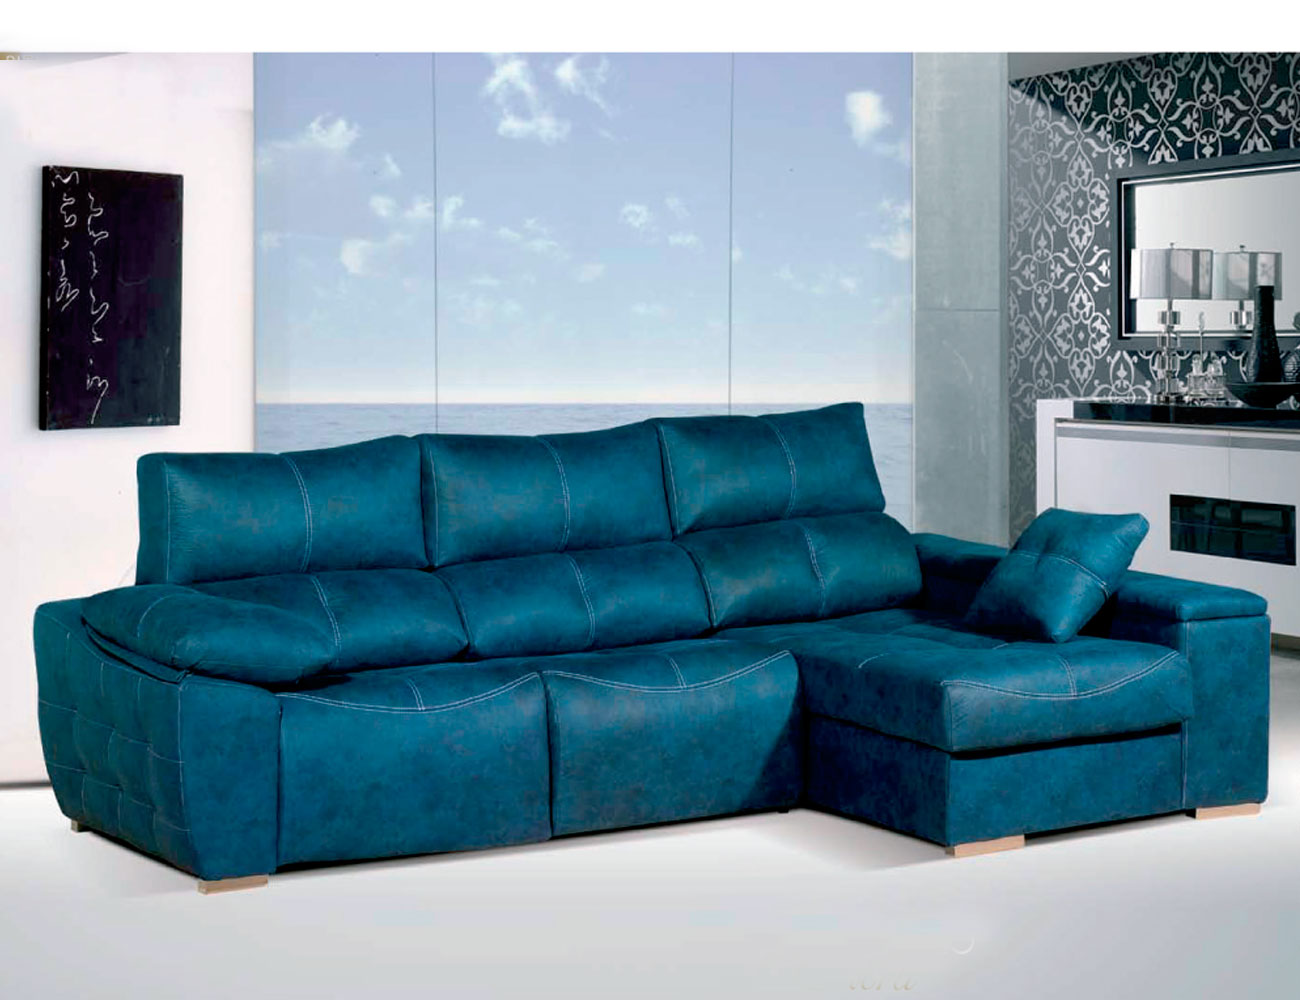 Sofa chaiselongue relax 2 motores anti manchas turquesa4